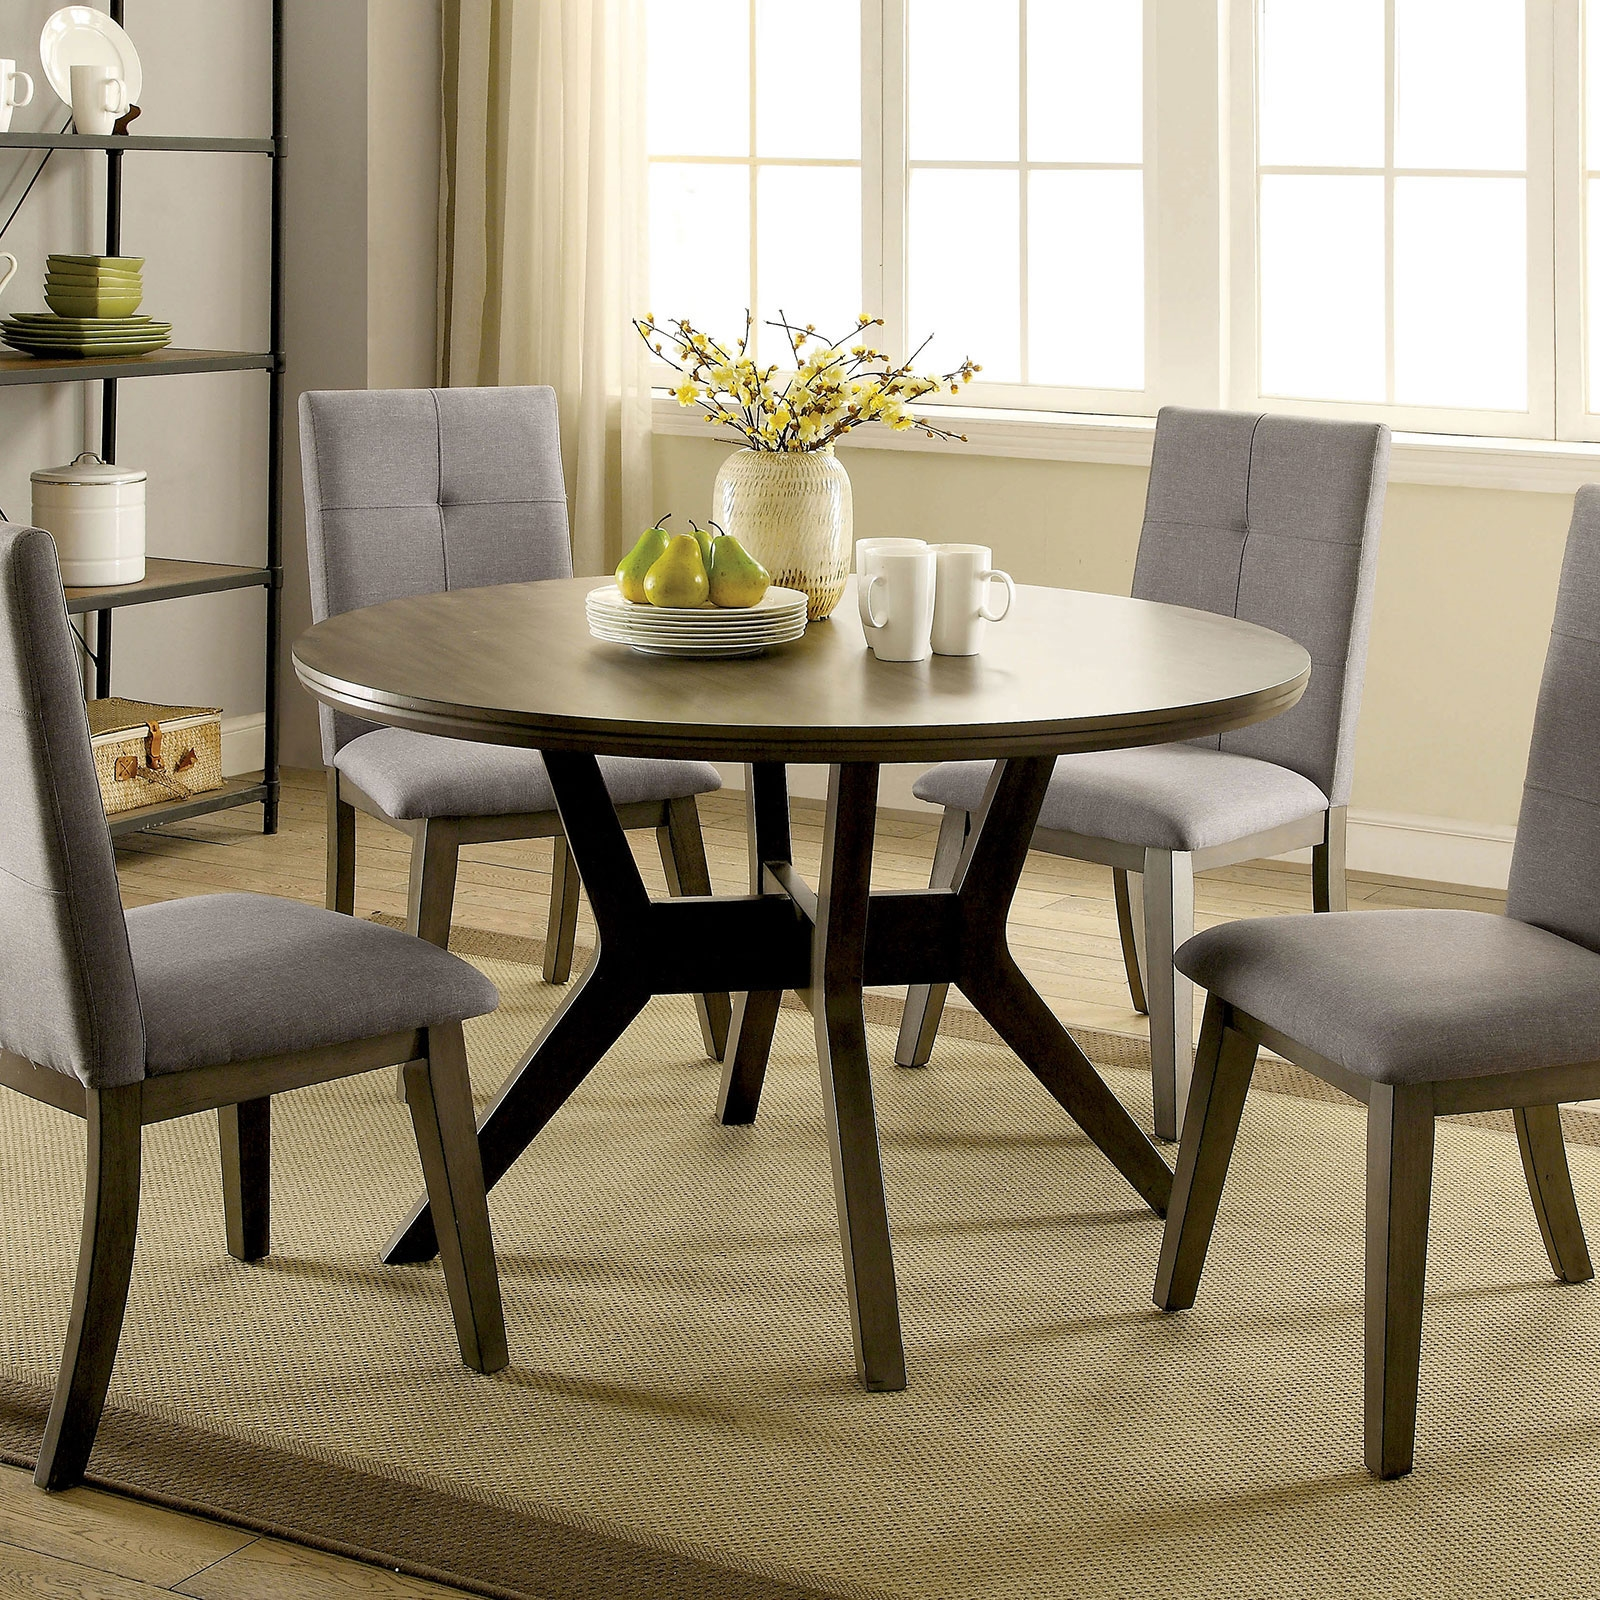 Modern Style Dining Room Sets Off 51, Modern Style Dining Room Table